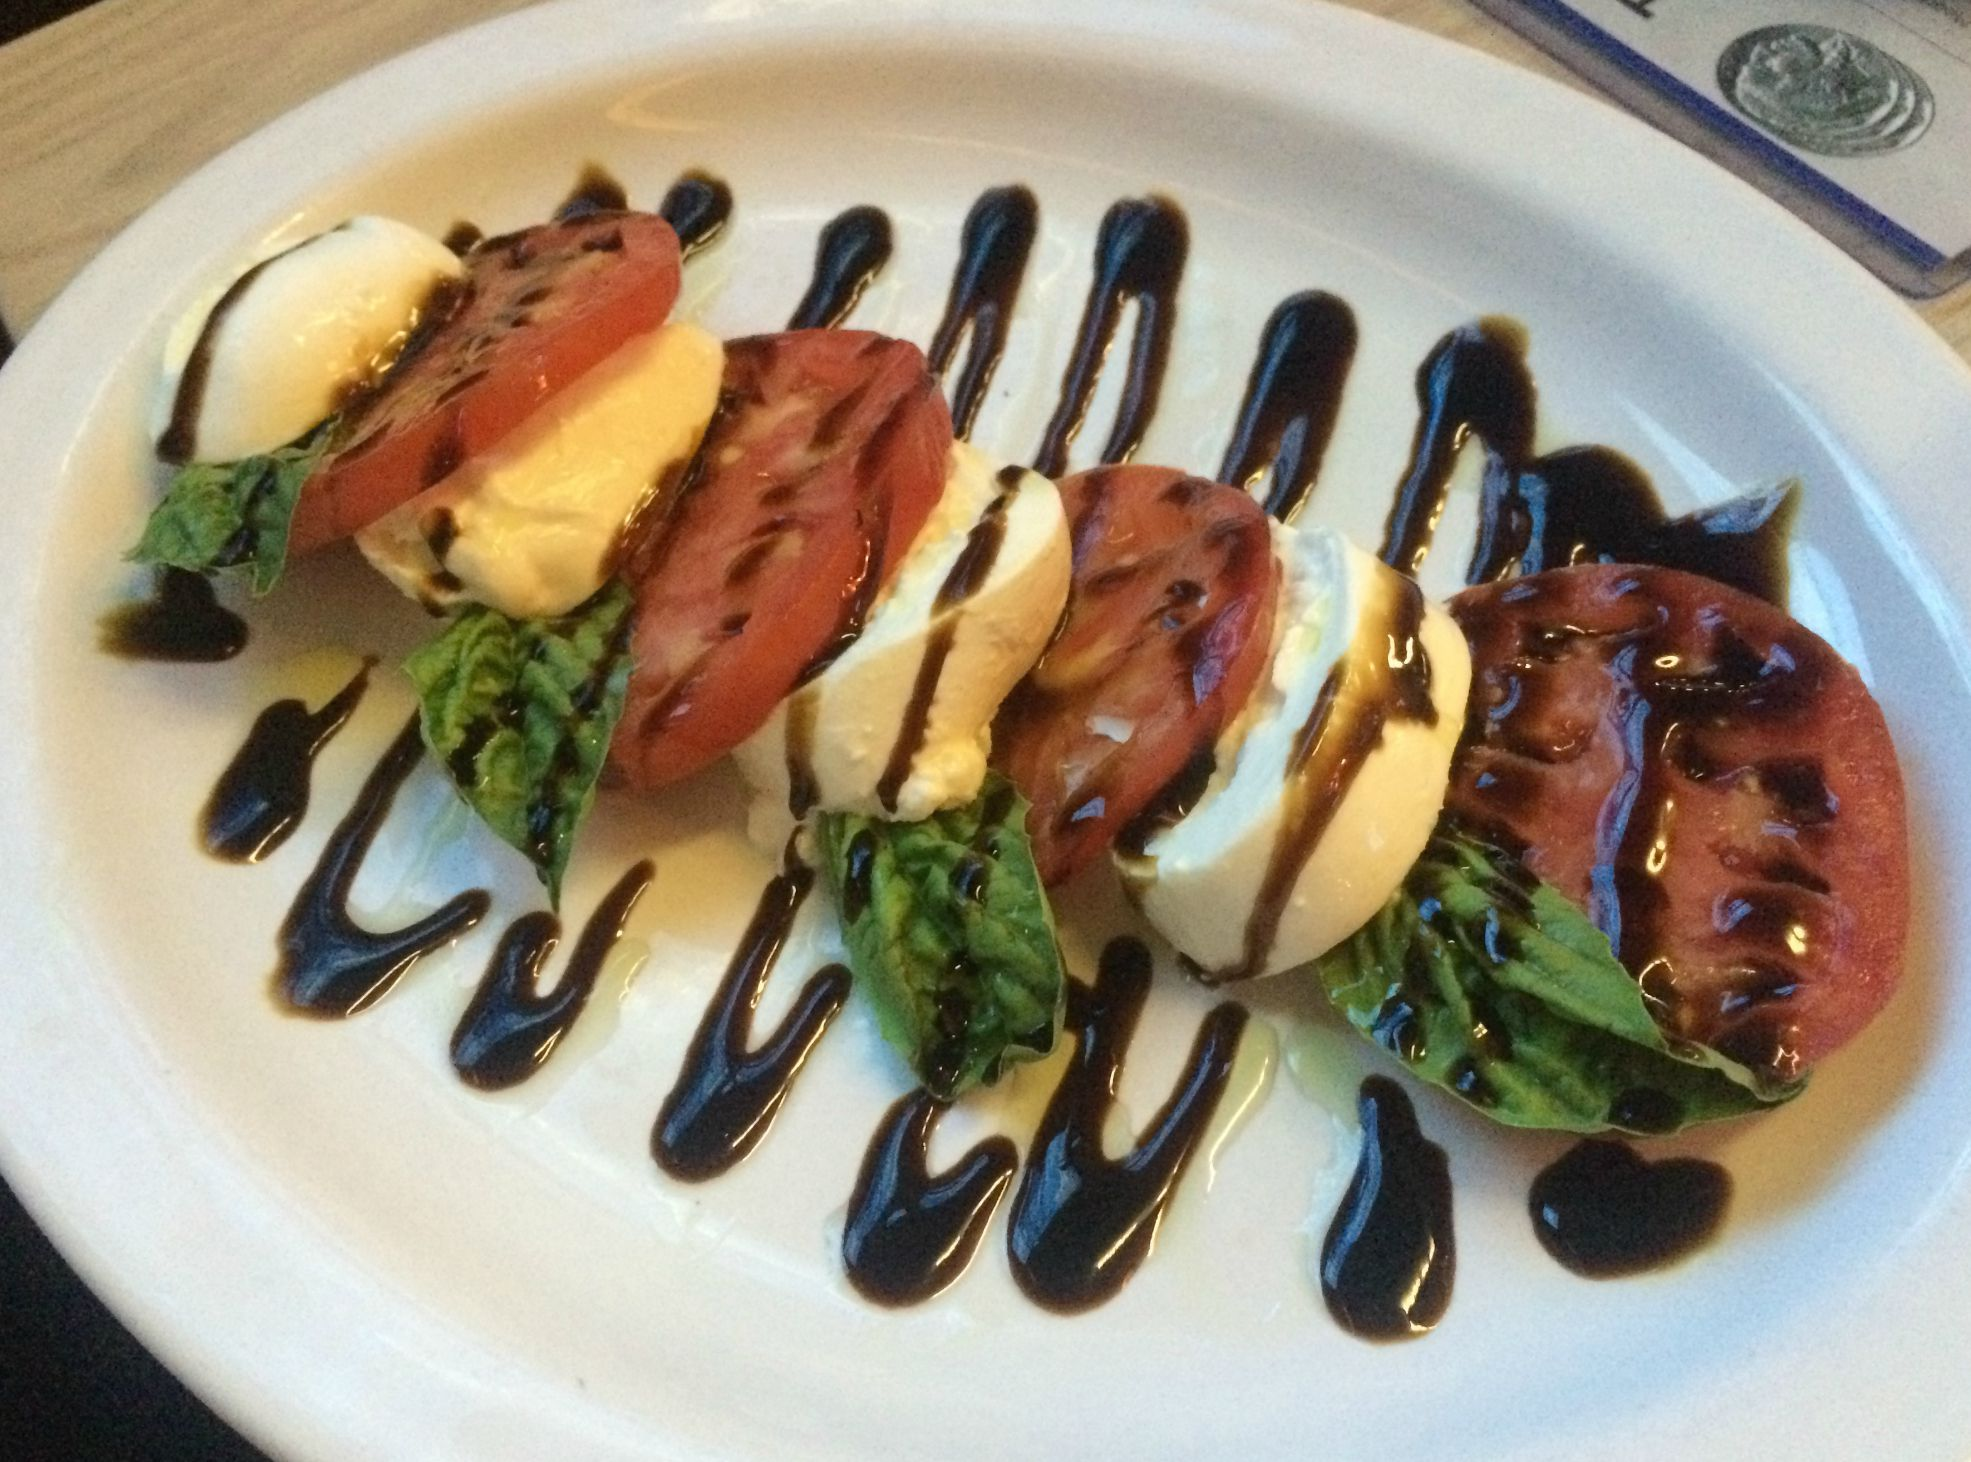 Triple Nickel caprese salad